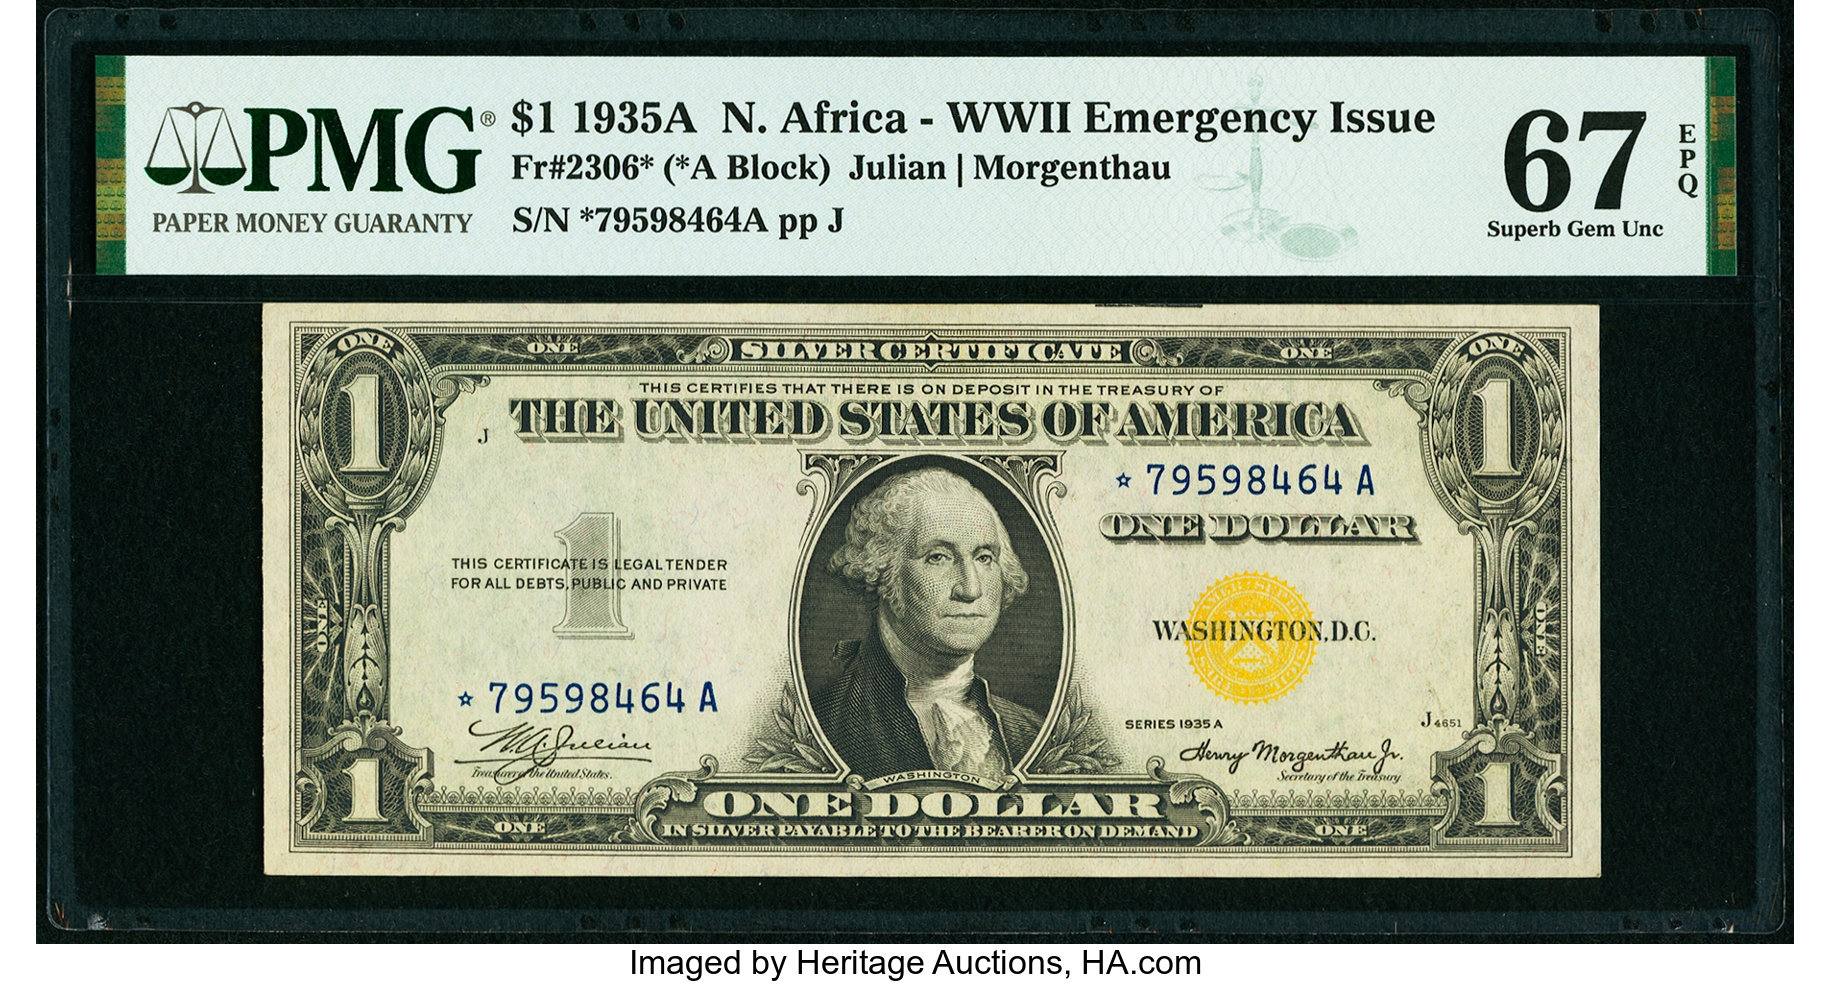 sample image for 1935A North Africa $1  (Fr.# 2306*)